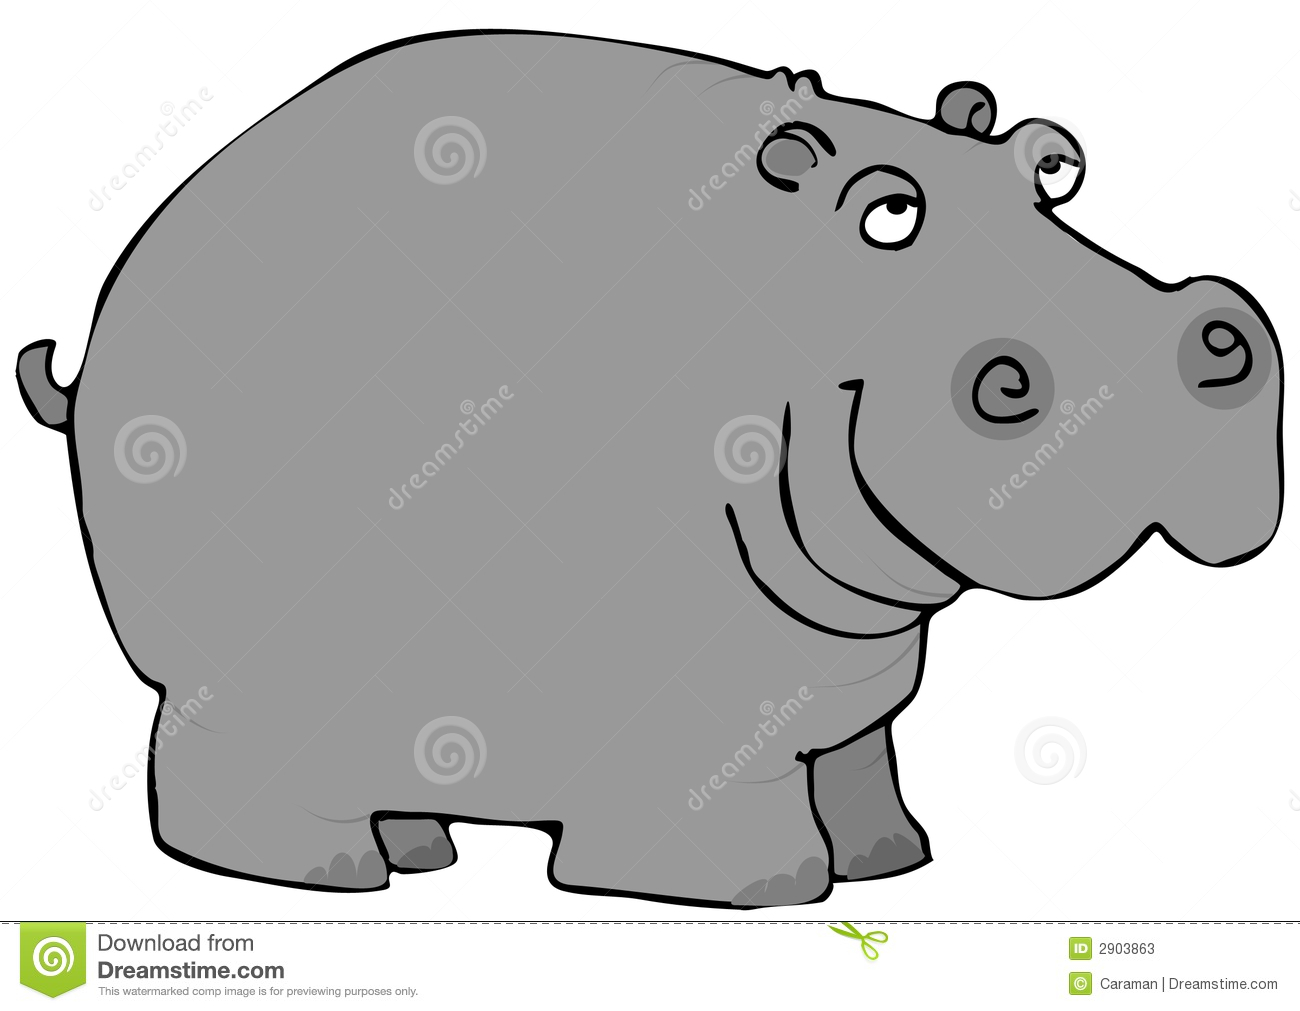 Free Hippo Clipart - Clip Art Pictures - Graphics - Illustrations